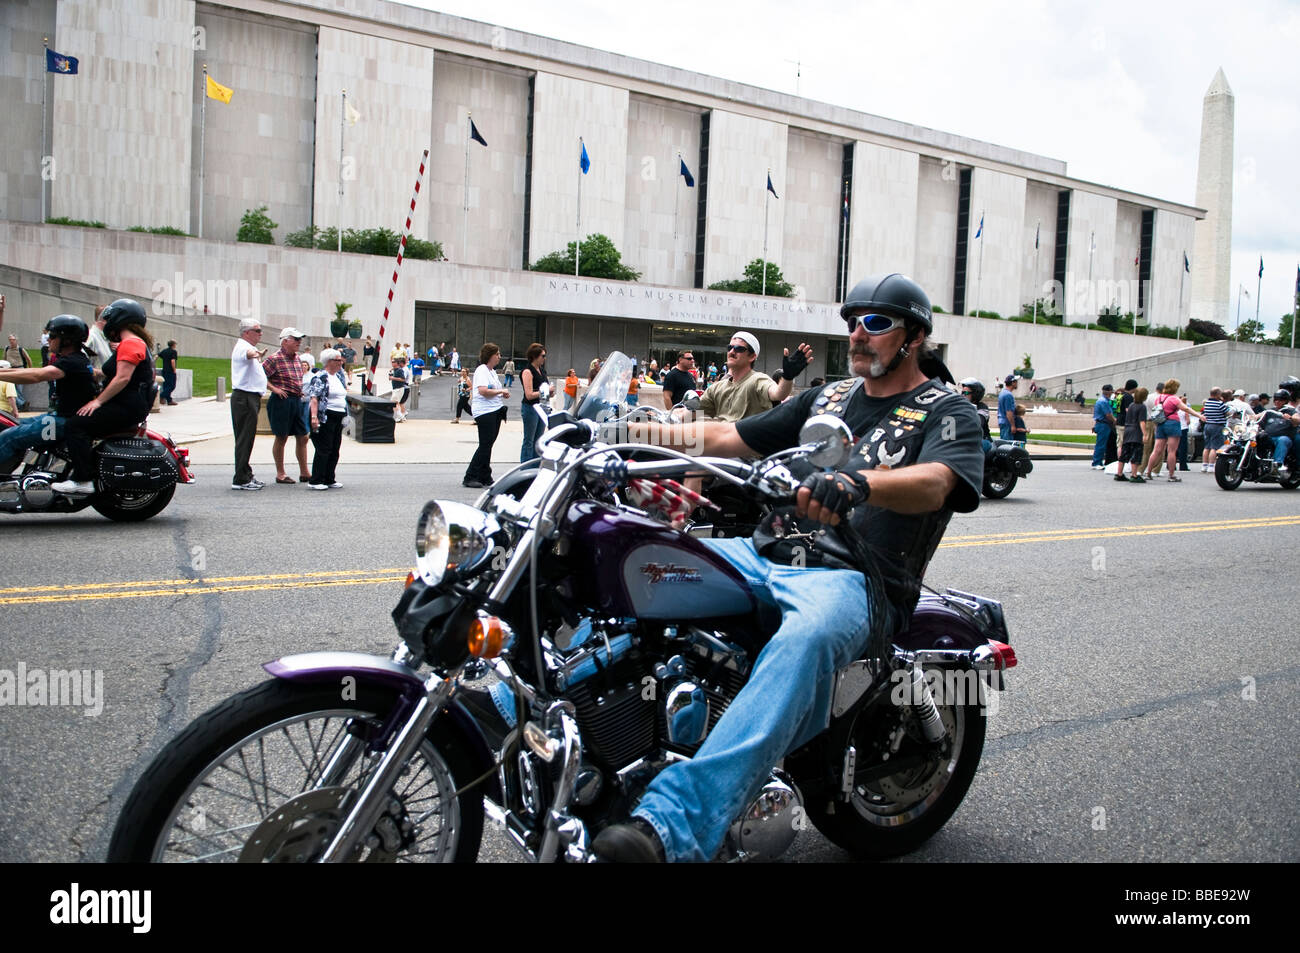 Thousands of Motorcycles on the streets of Washington DC, the annual Rolling Thunder event takes place every Memorial - Stock Image